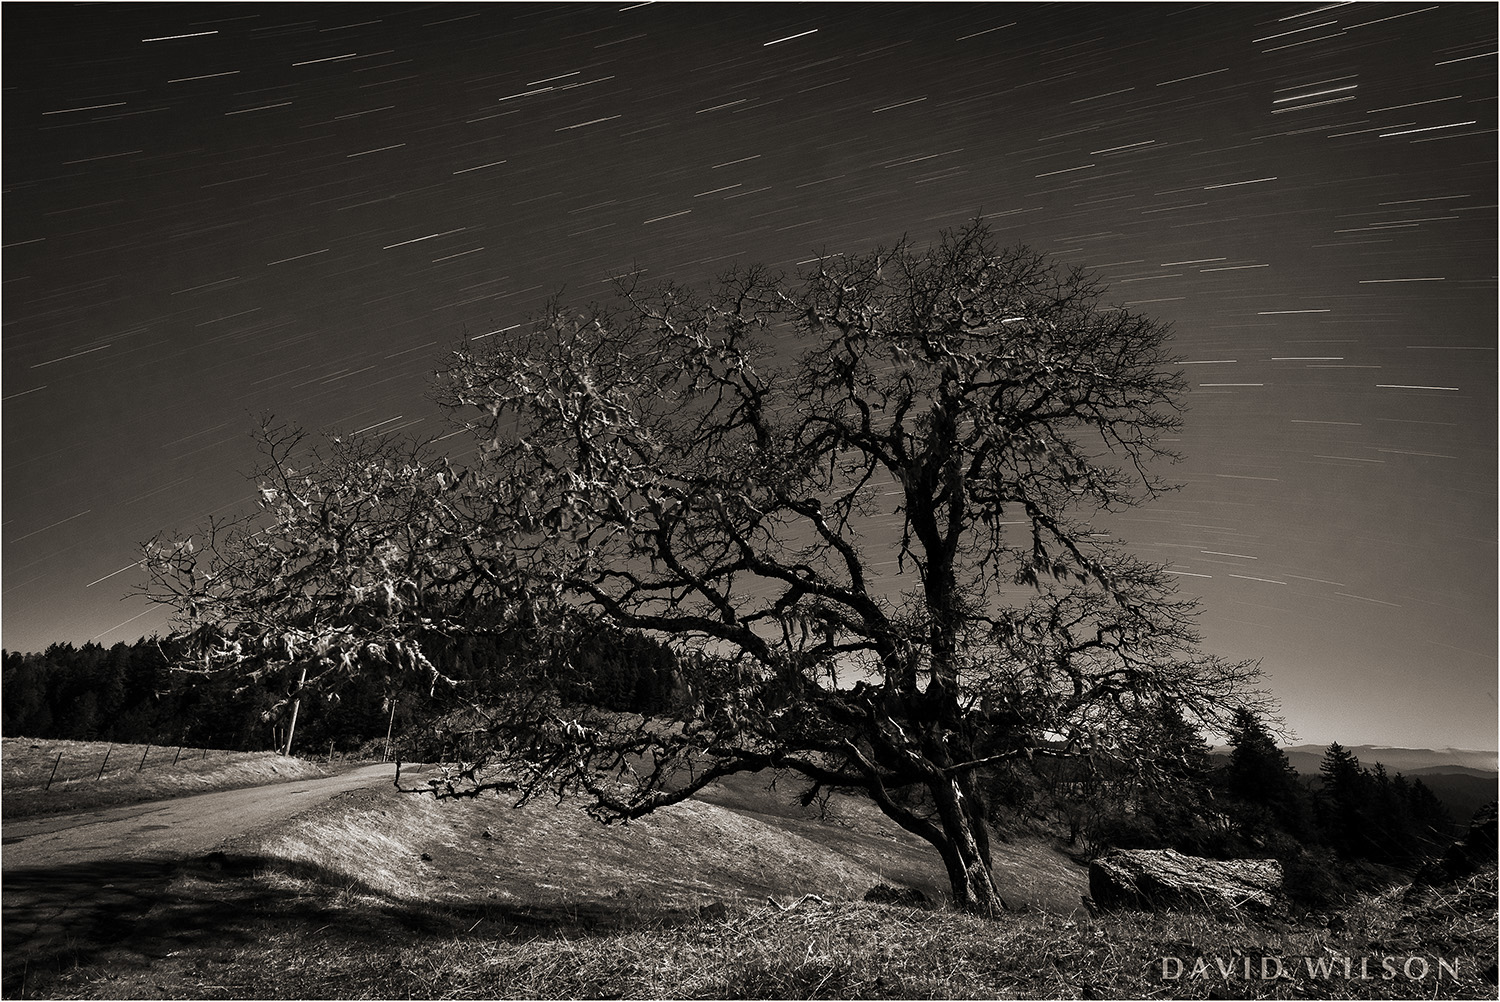 A moonlit oak tree watches the passage of the stars on their nightly journey across the sky near a country road in Humboldt County, California. March 2019.